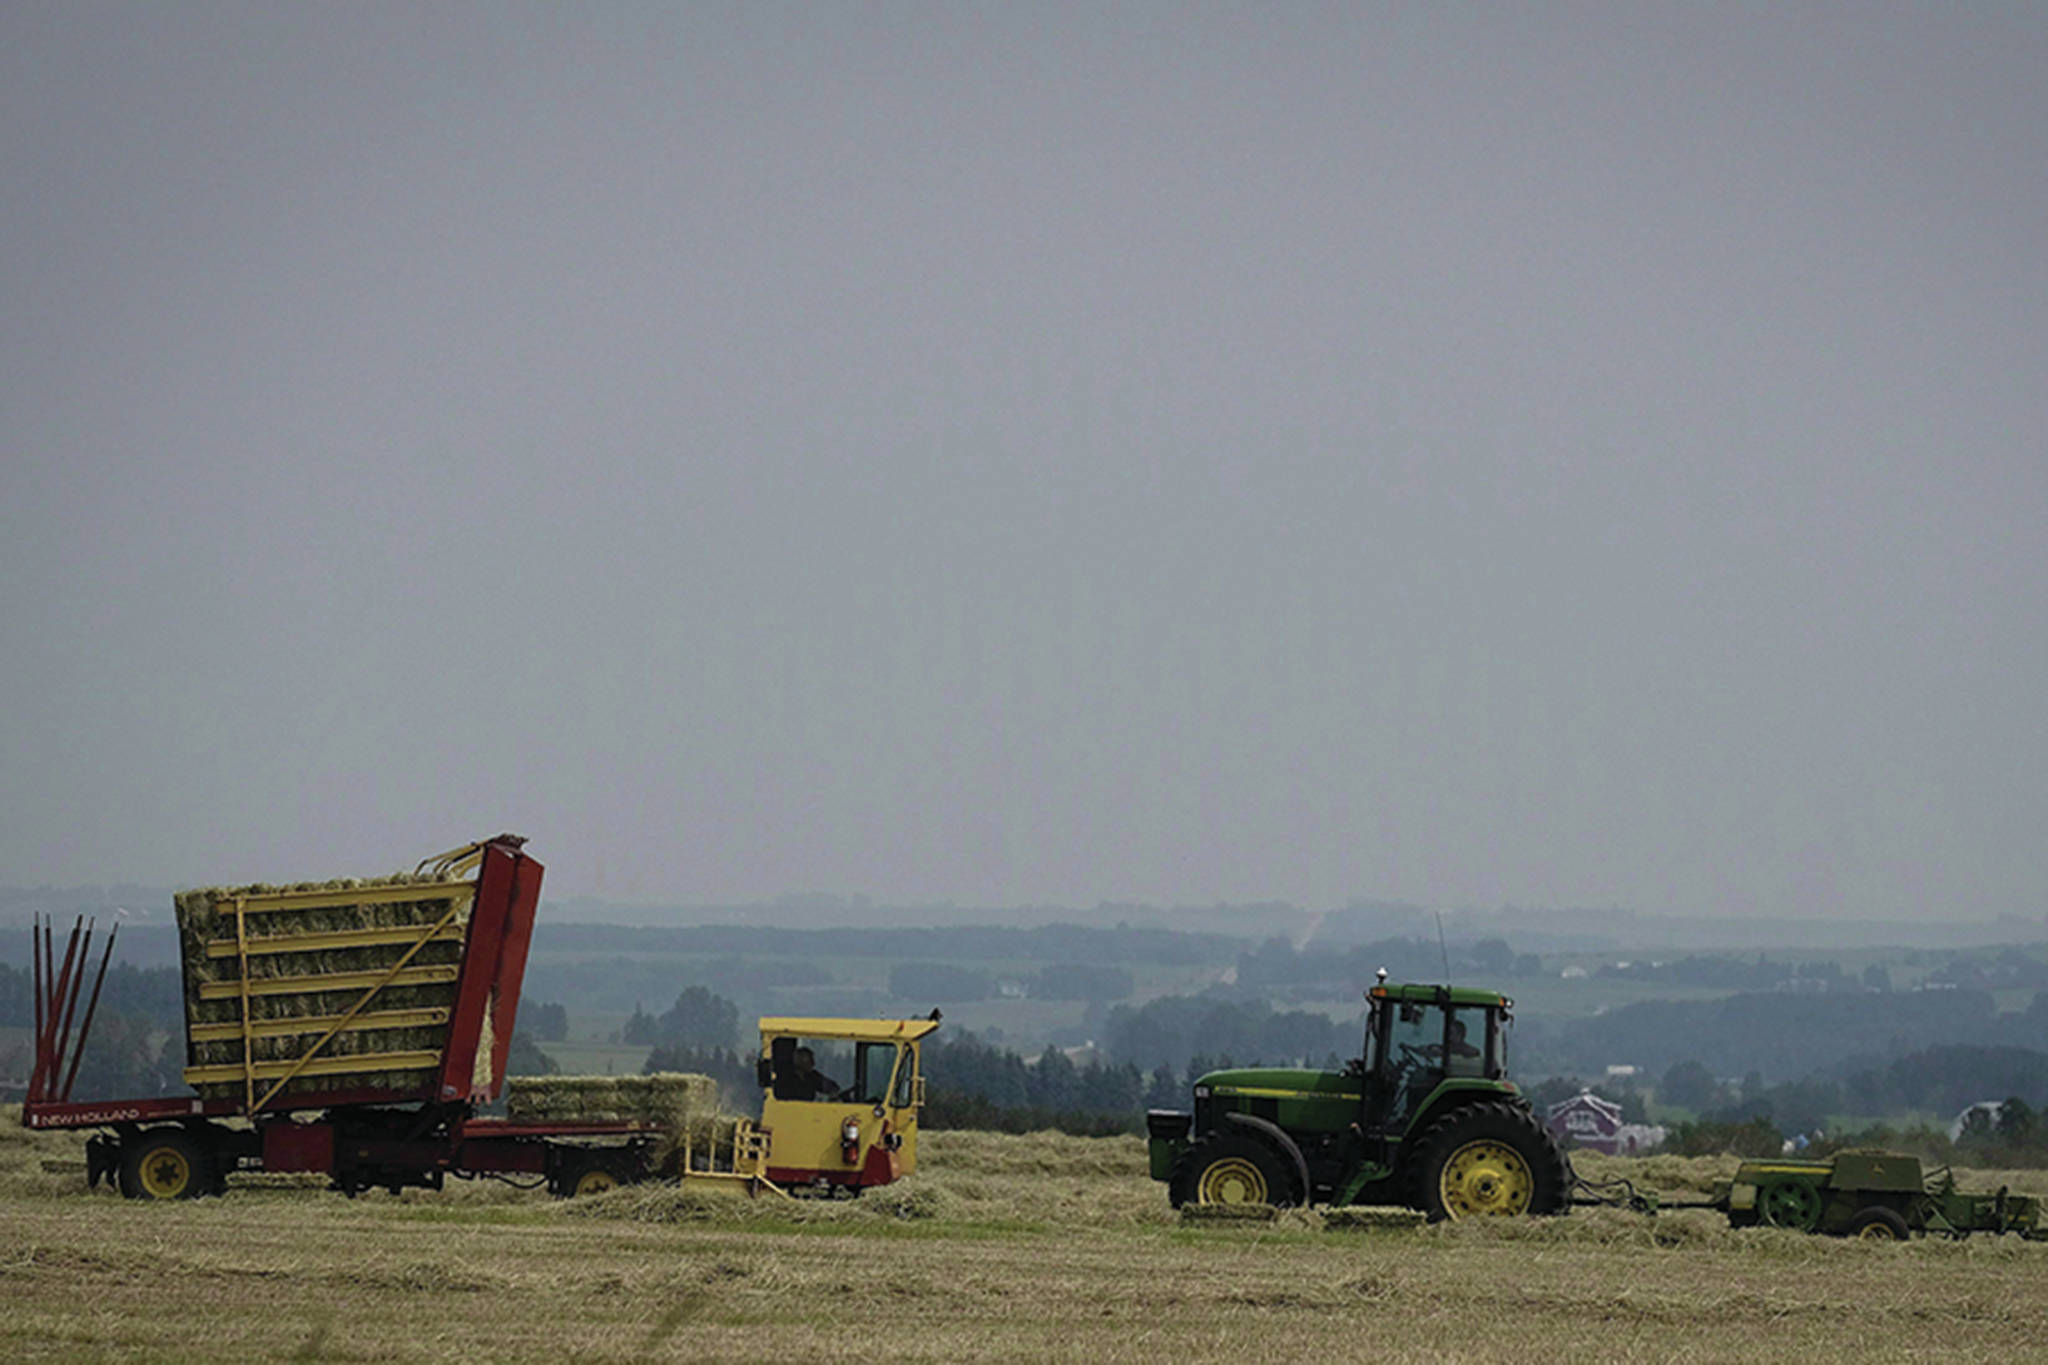 Farmer Grant Bird, left, and farm hand Connor Hunt bale a hay crop near Cremona, Alta., Monday, July 17, 2017.Farmers are on a never-ending quest for more detailed weather forecasts as they try to increase yields on larger plots while contending with more extreme weather, such as the record rains that have drenched parts of southern Ontario this year, or the droughts that have left vast fields bone dry in Saskatchewan. THE CANADIAN PRESS/Jeff McIntosh